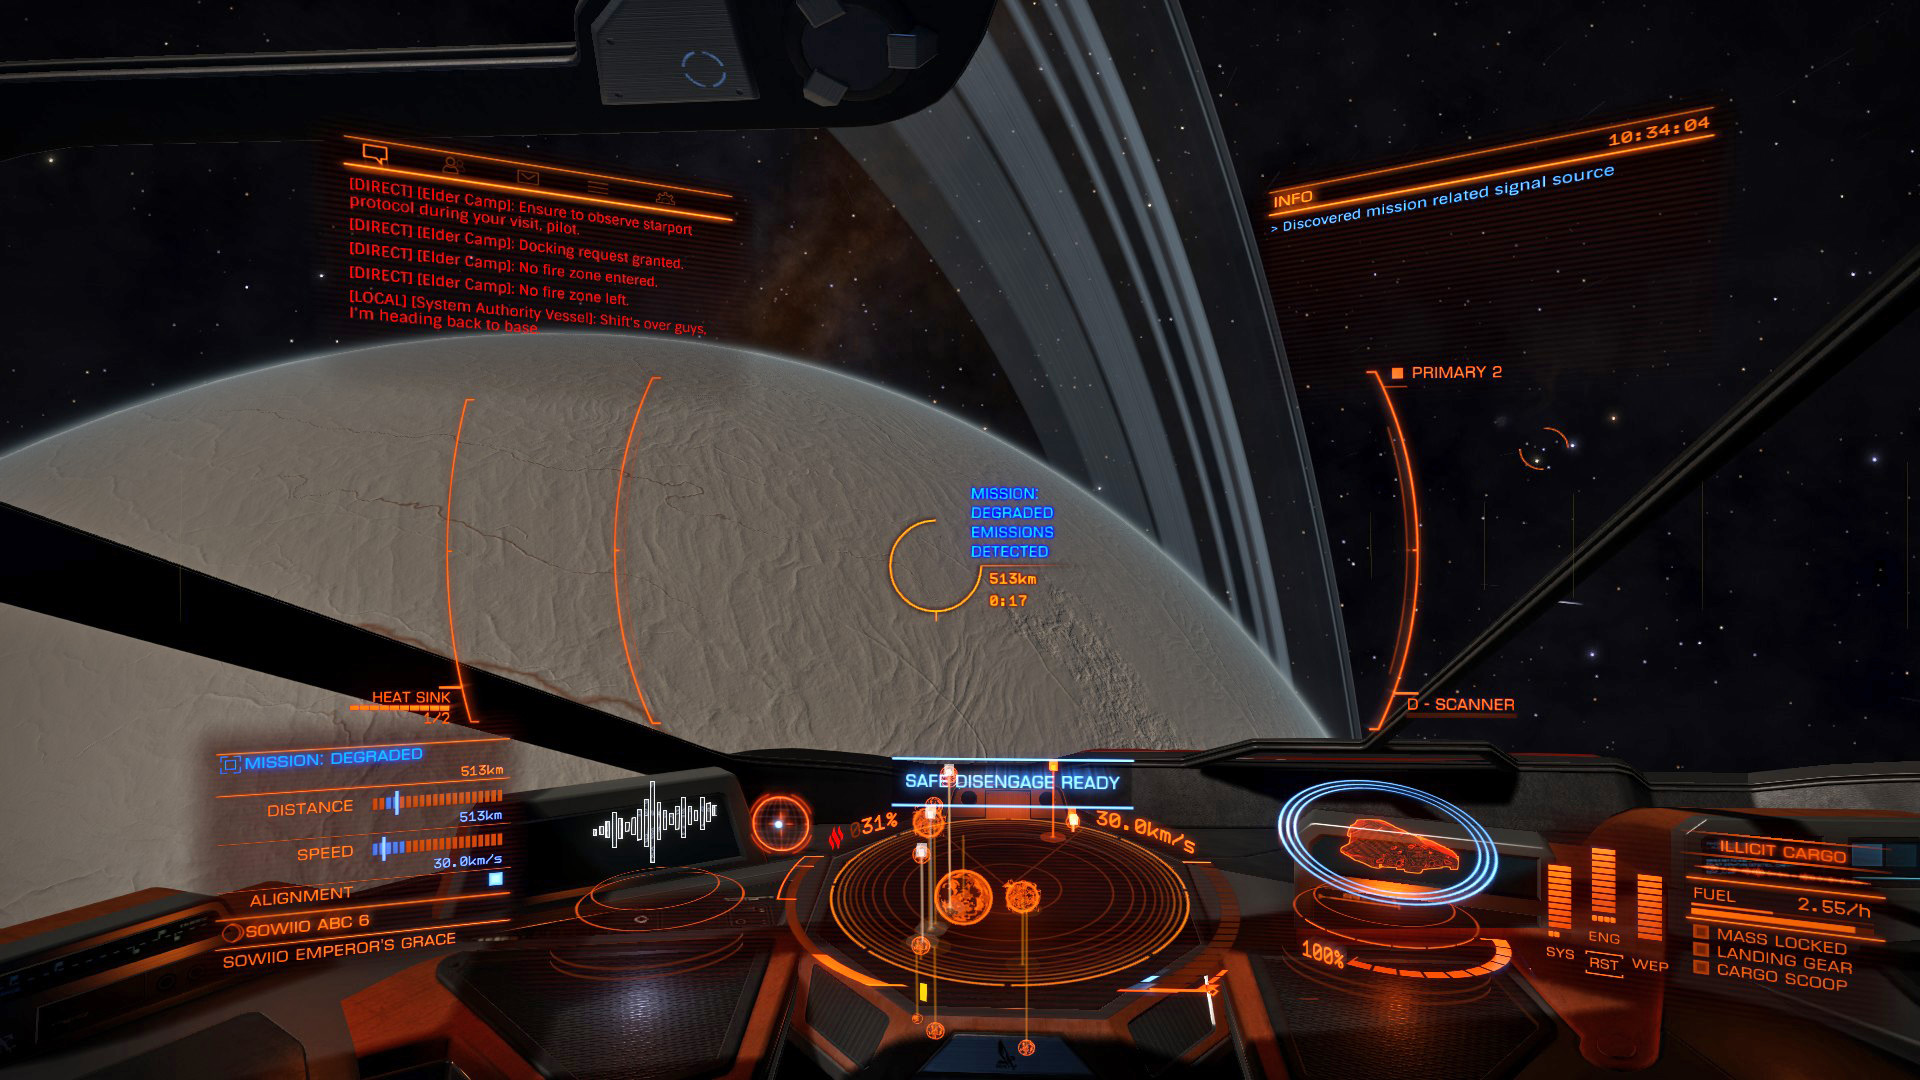 Elite: Dangerous beginner's guide: A screenshot showing a mission-related signal source in supercruise